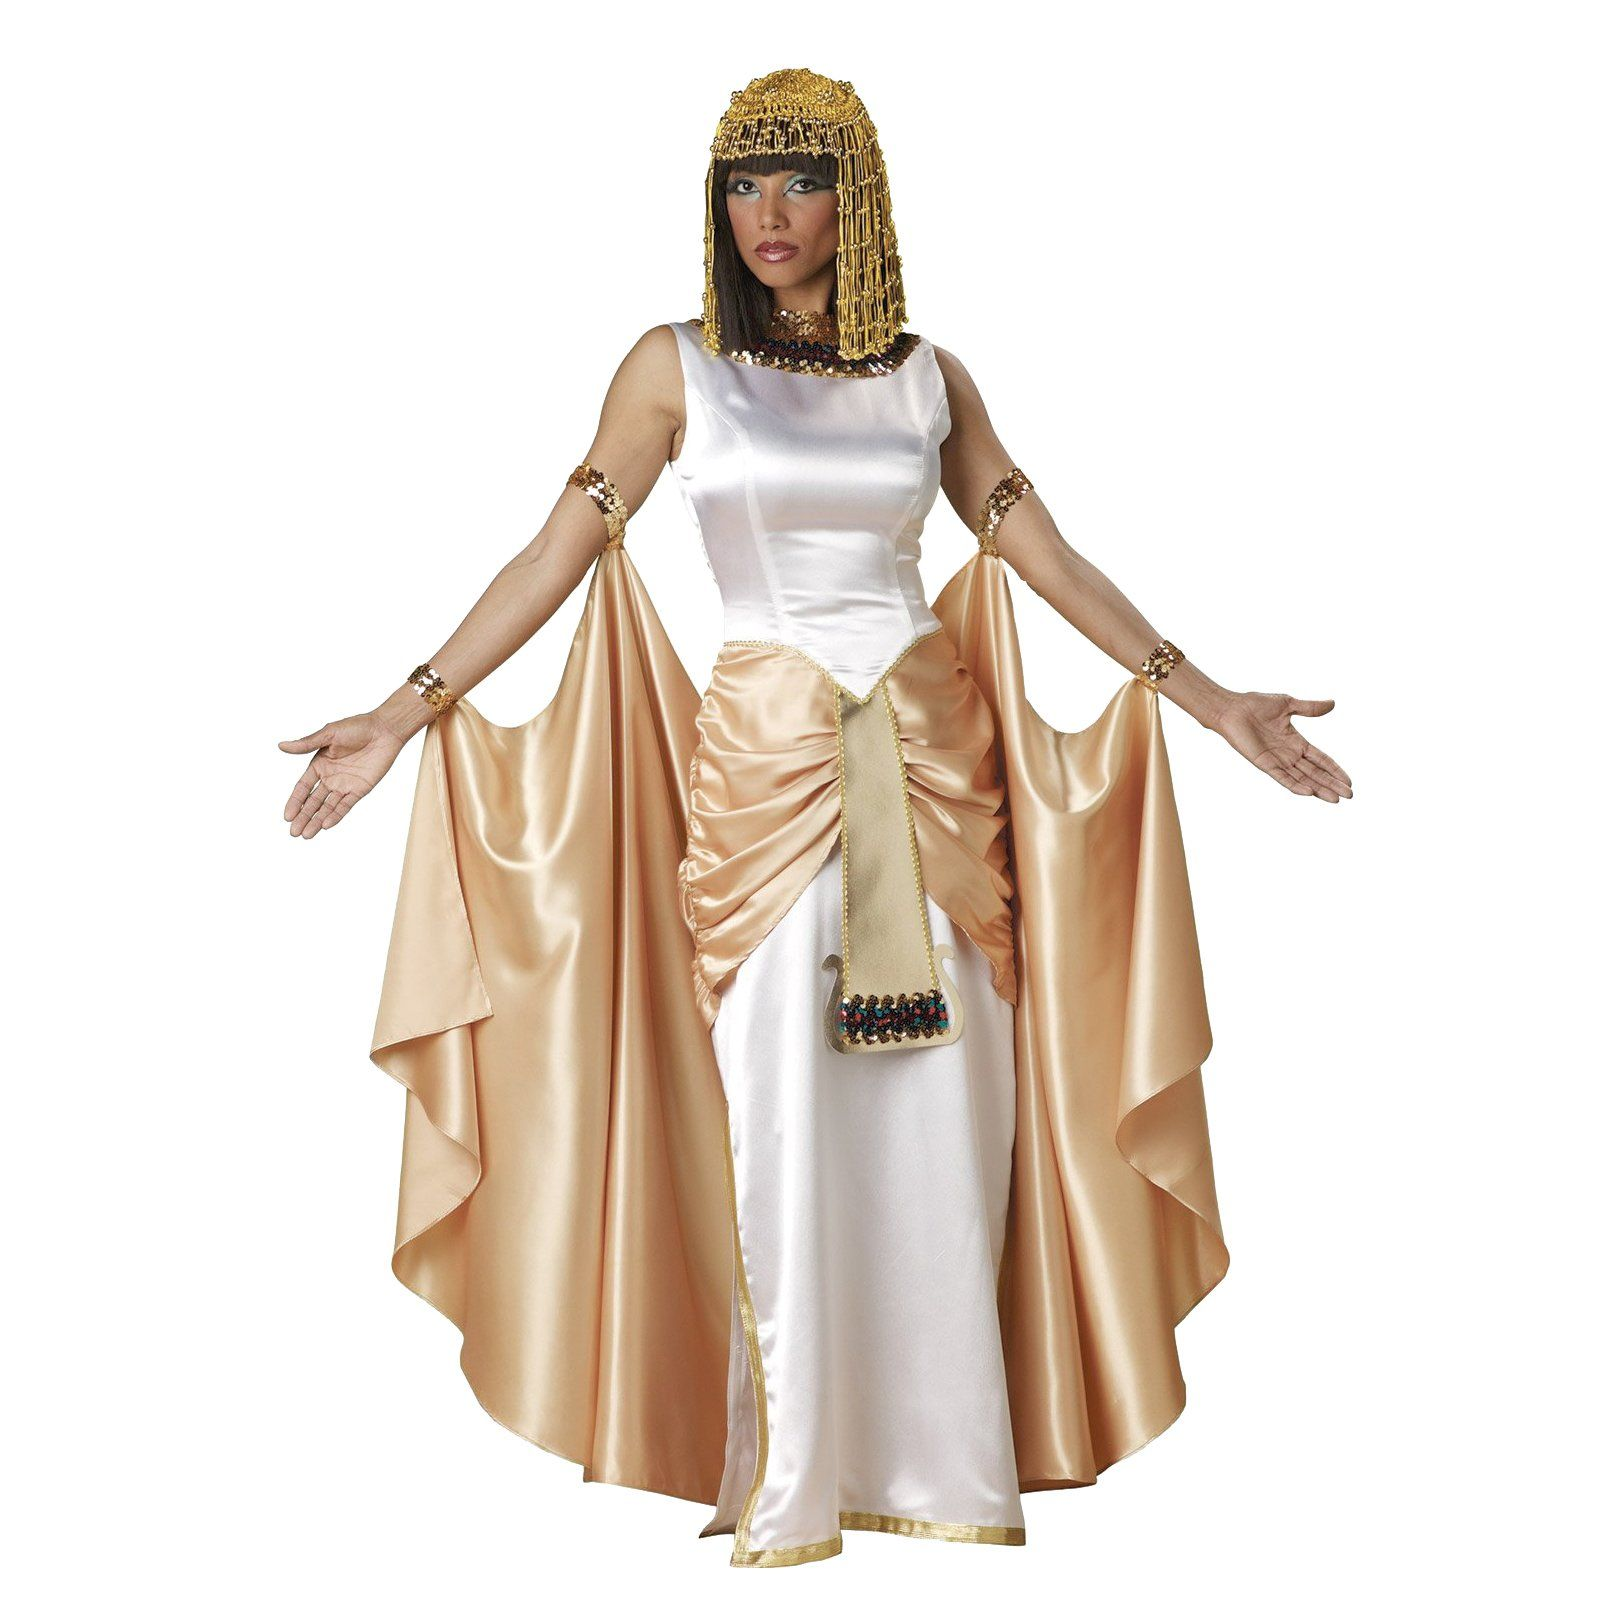 Home gt gt cleopatra costumes gt gt jewel of the nile egyptian adult - Cleopatra Costume